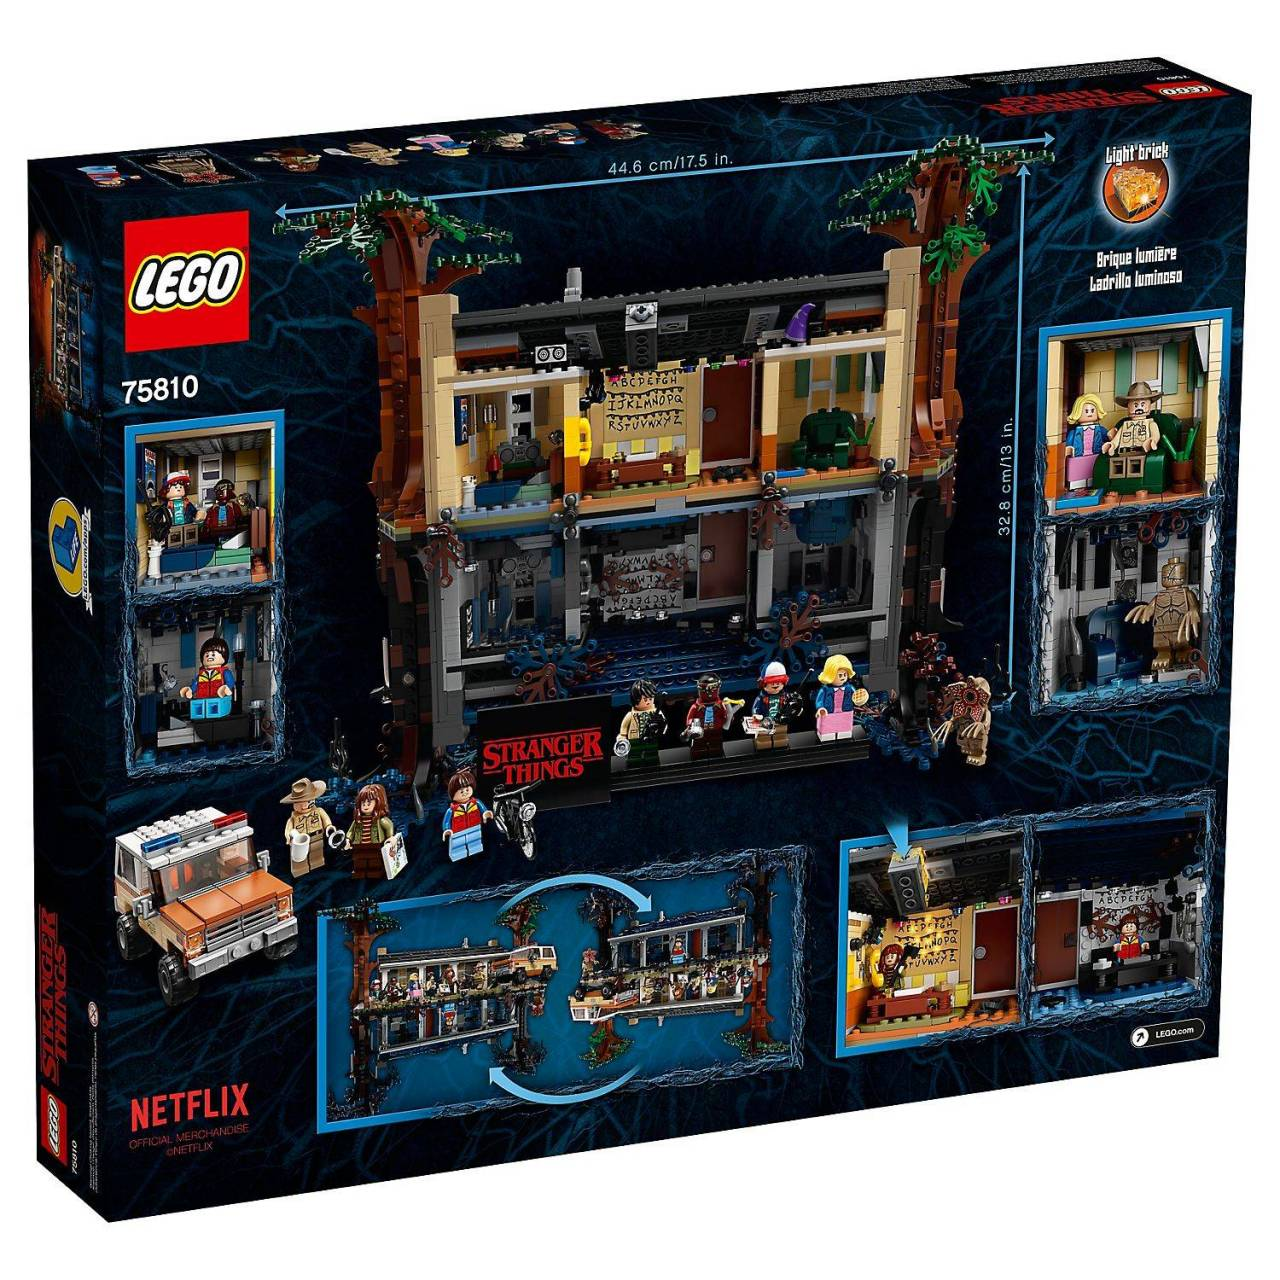 Lego Stranger Things - Complete Upside Down set (achterkant)